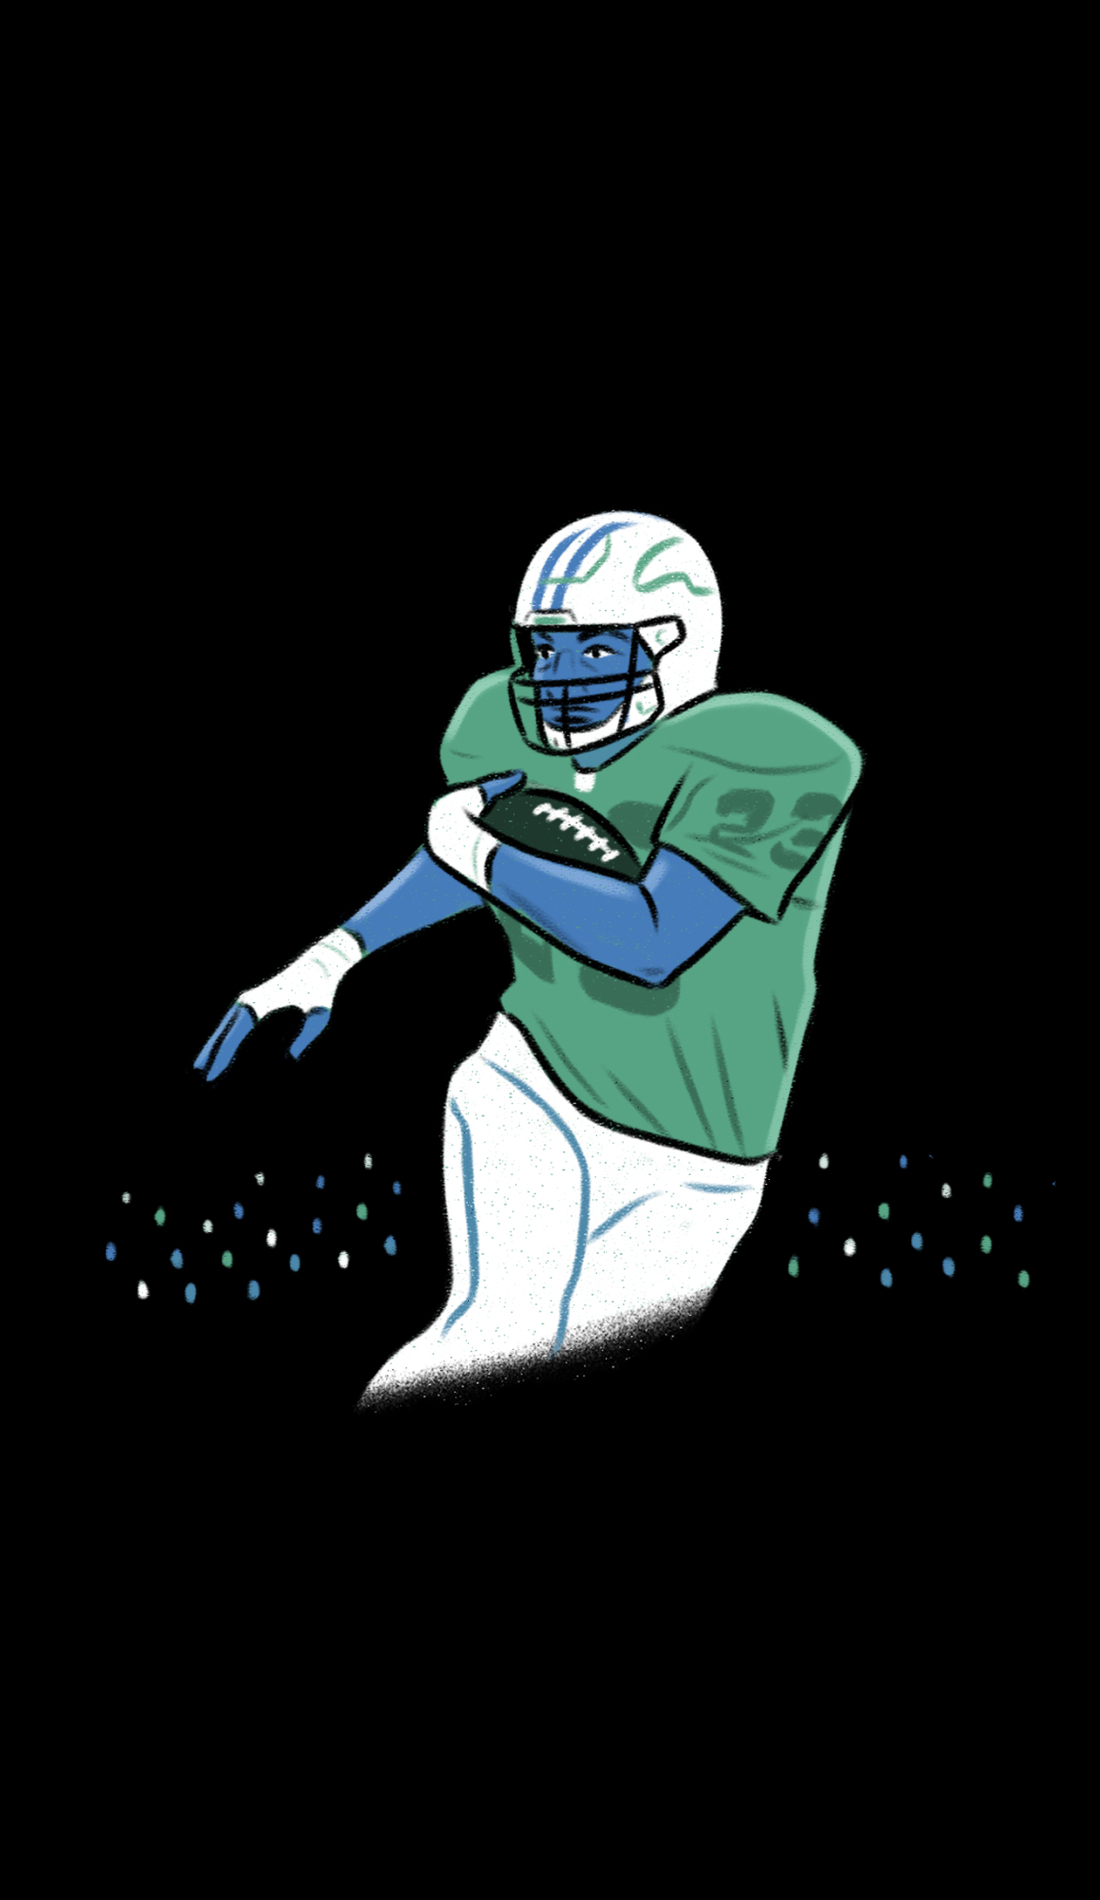 A San Diego State Aztecs Football live event